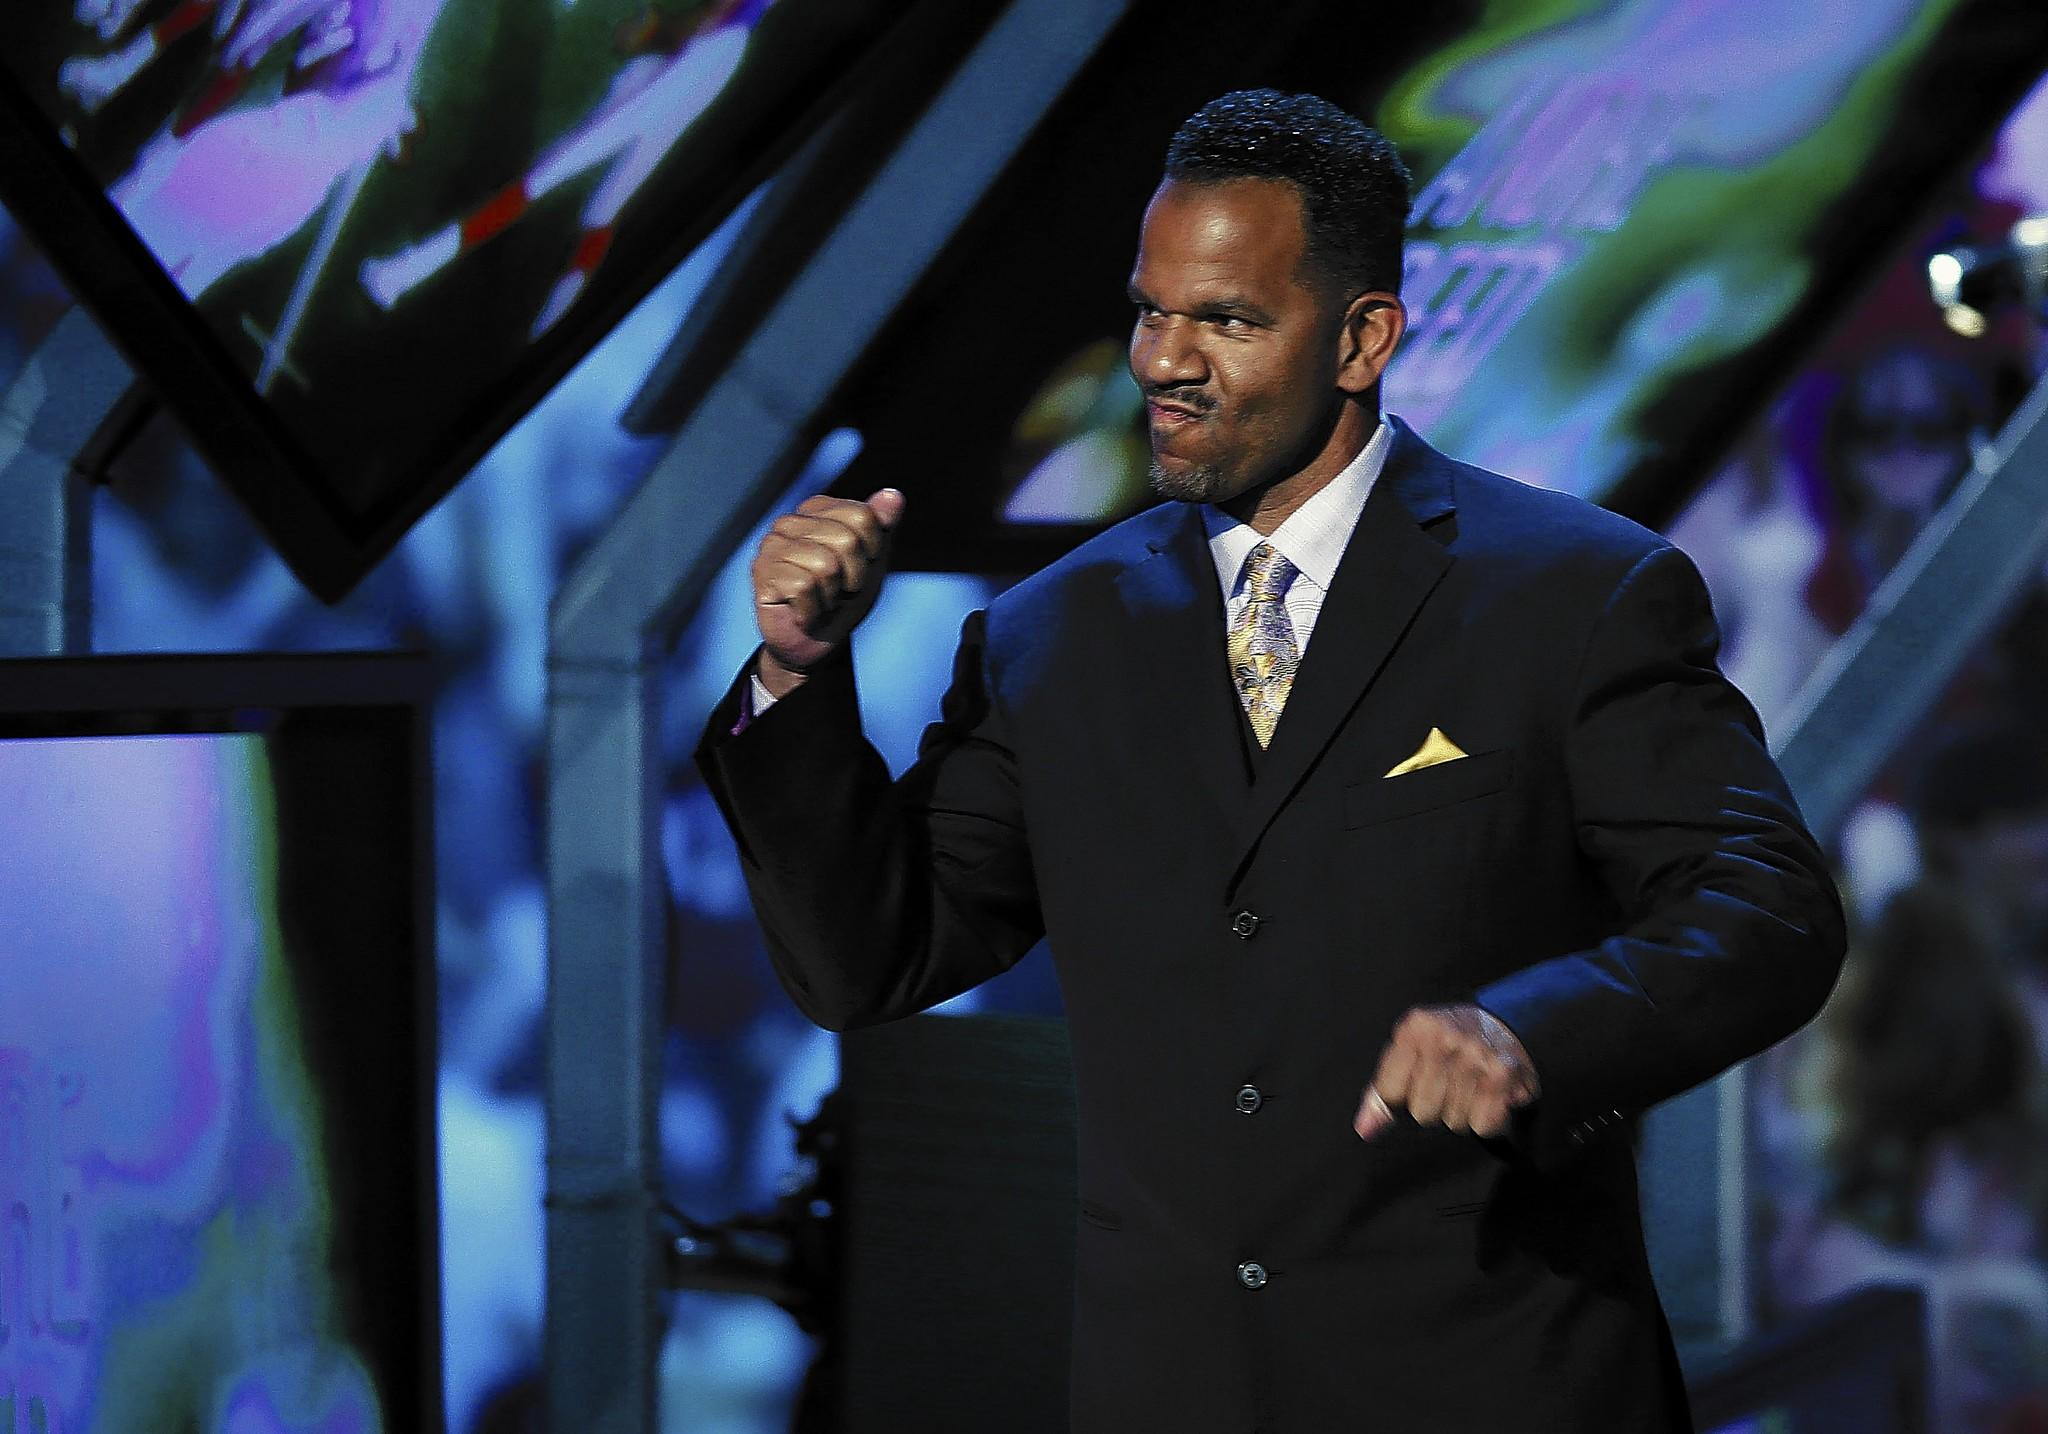 Former Dieruff High and Kutztown University star Andre Reed acknowledges the crowd as walks on stage during the NFL Honors award show in New York on Saturday night.